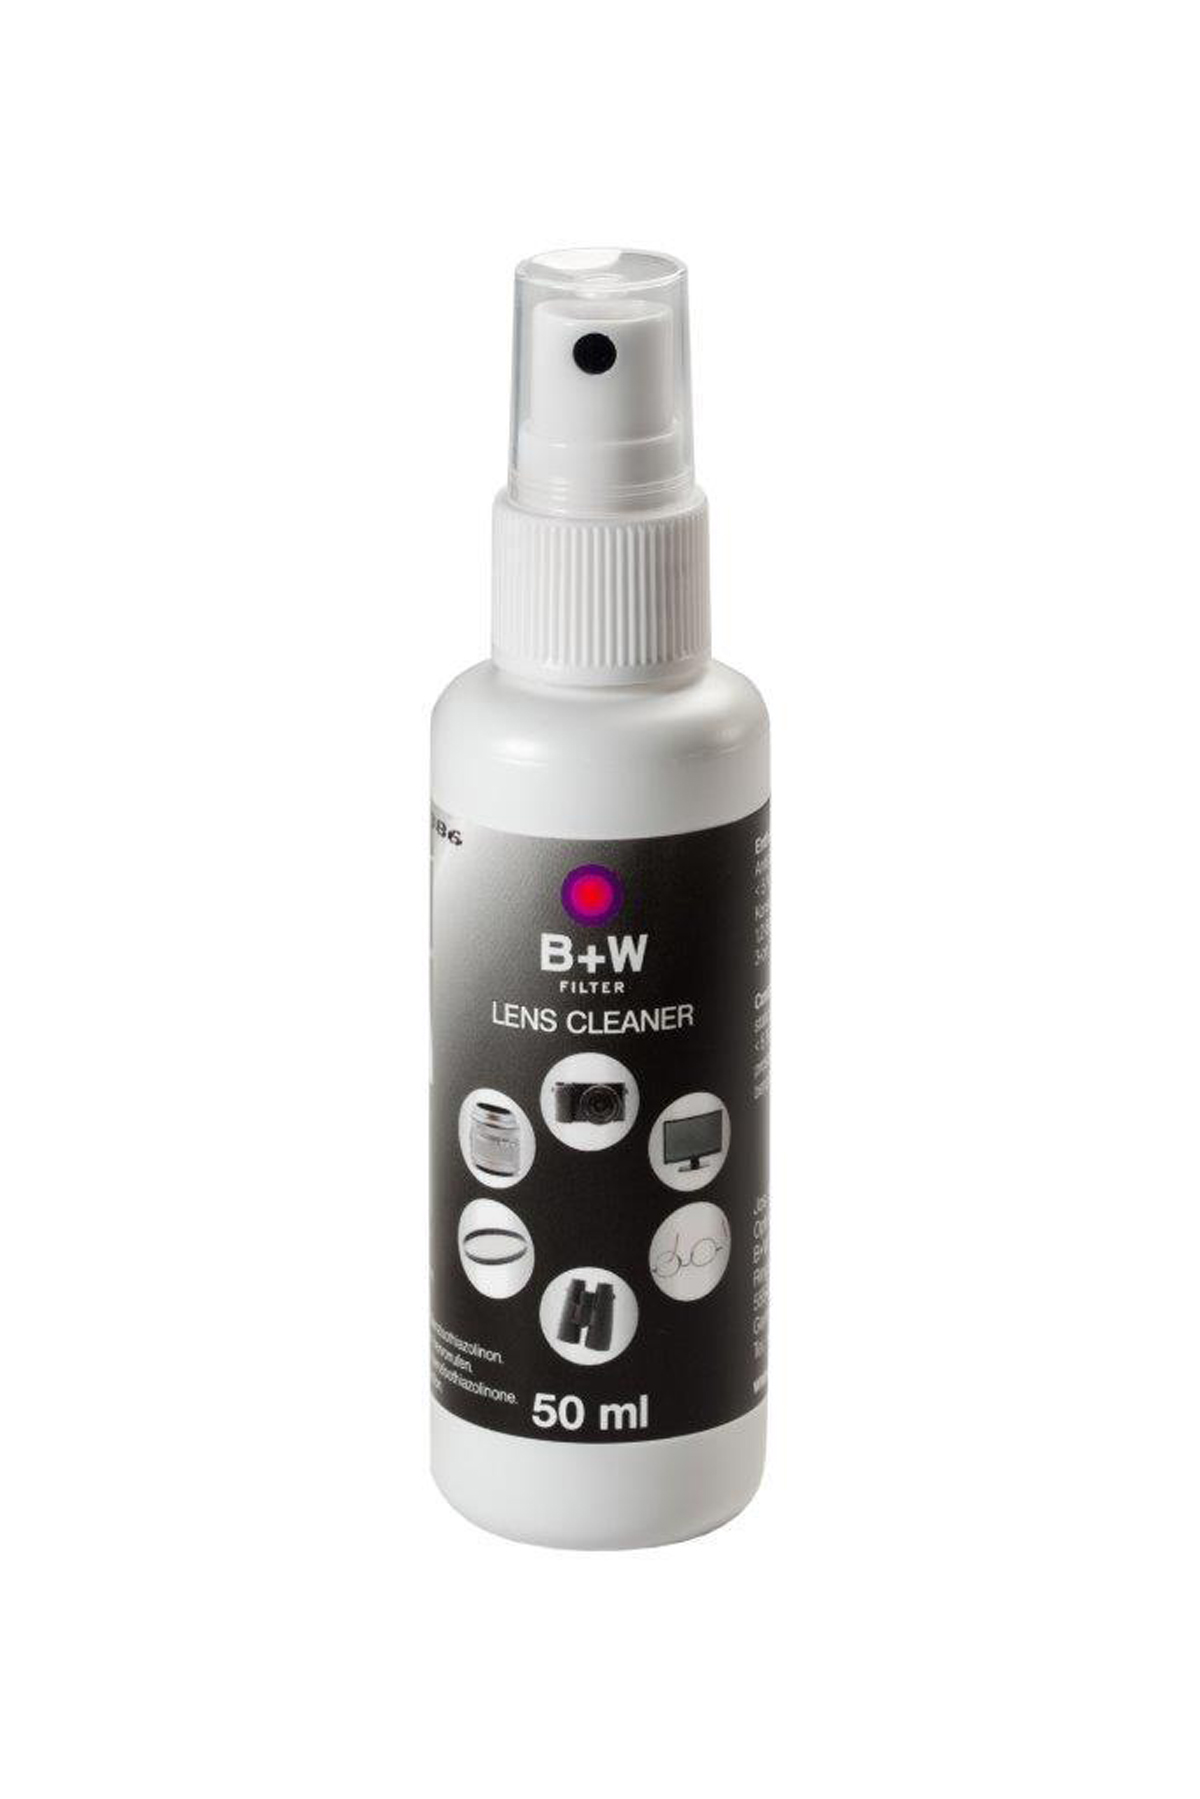 B+w Lens Cleaner Pumpspray 50 ml